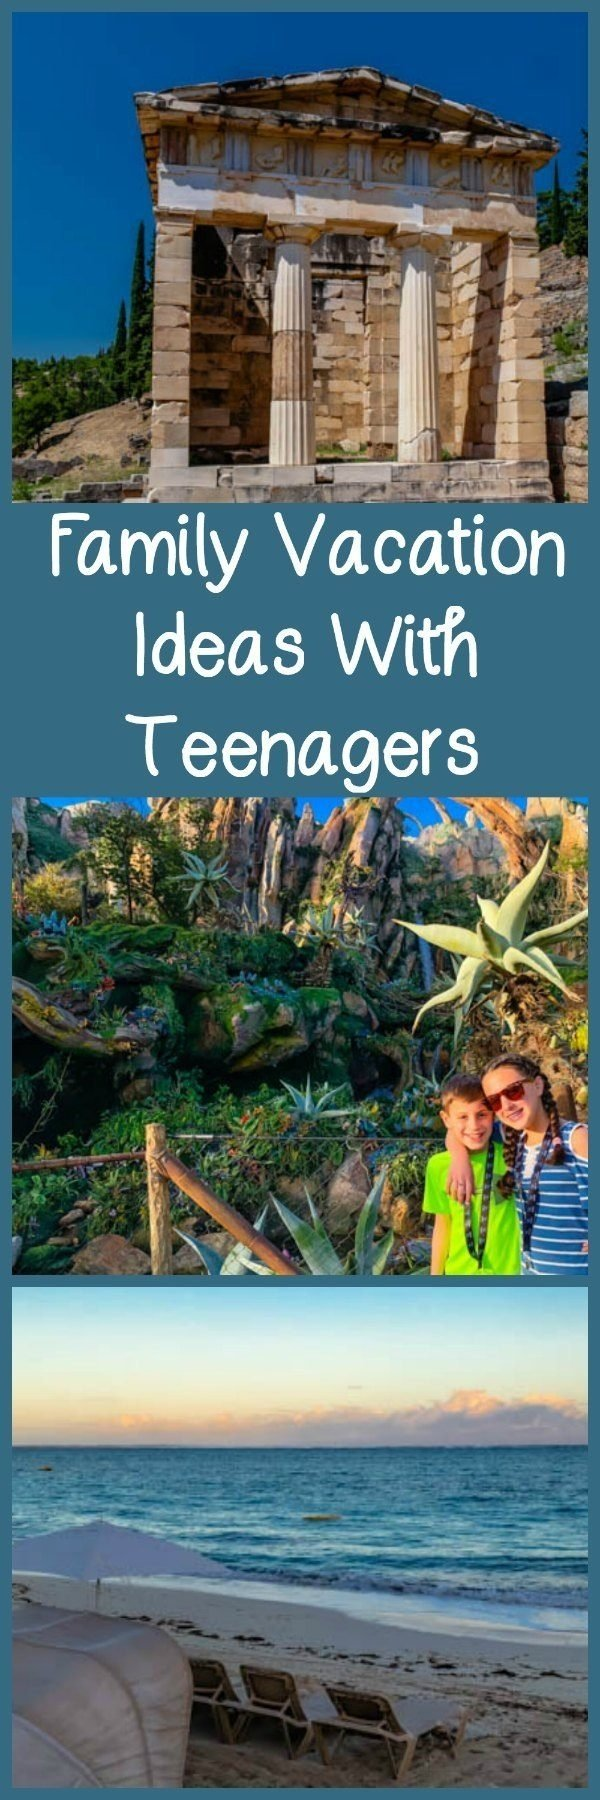 family vacation ideas with teenagers - family travel magazine